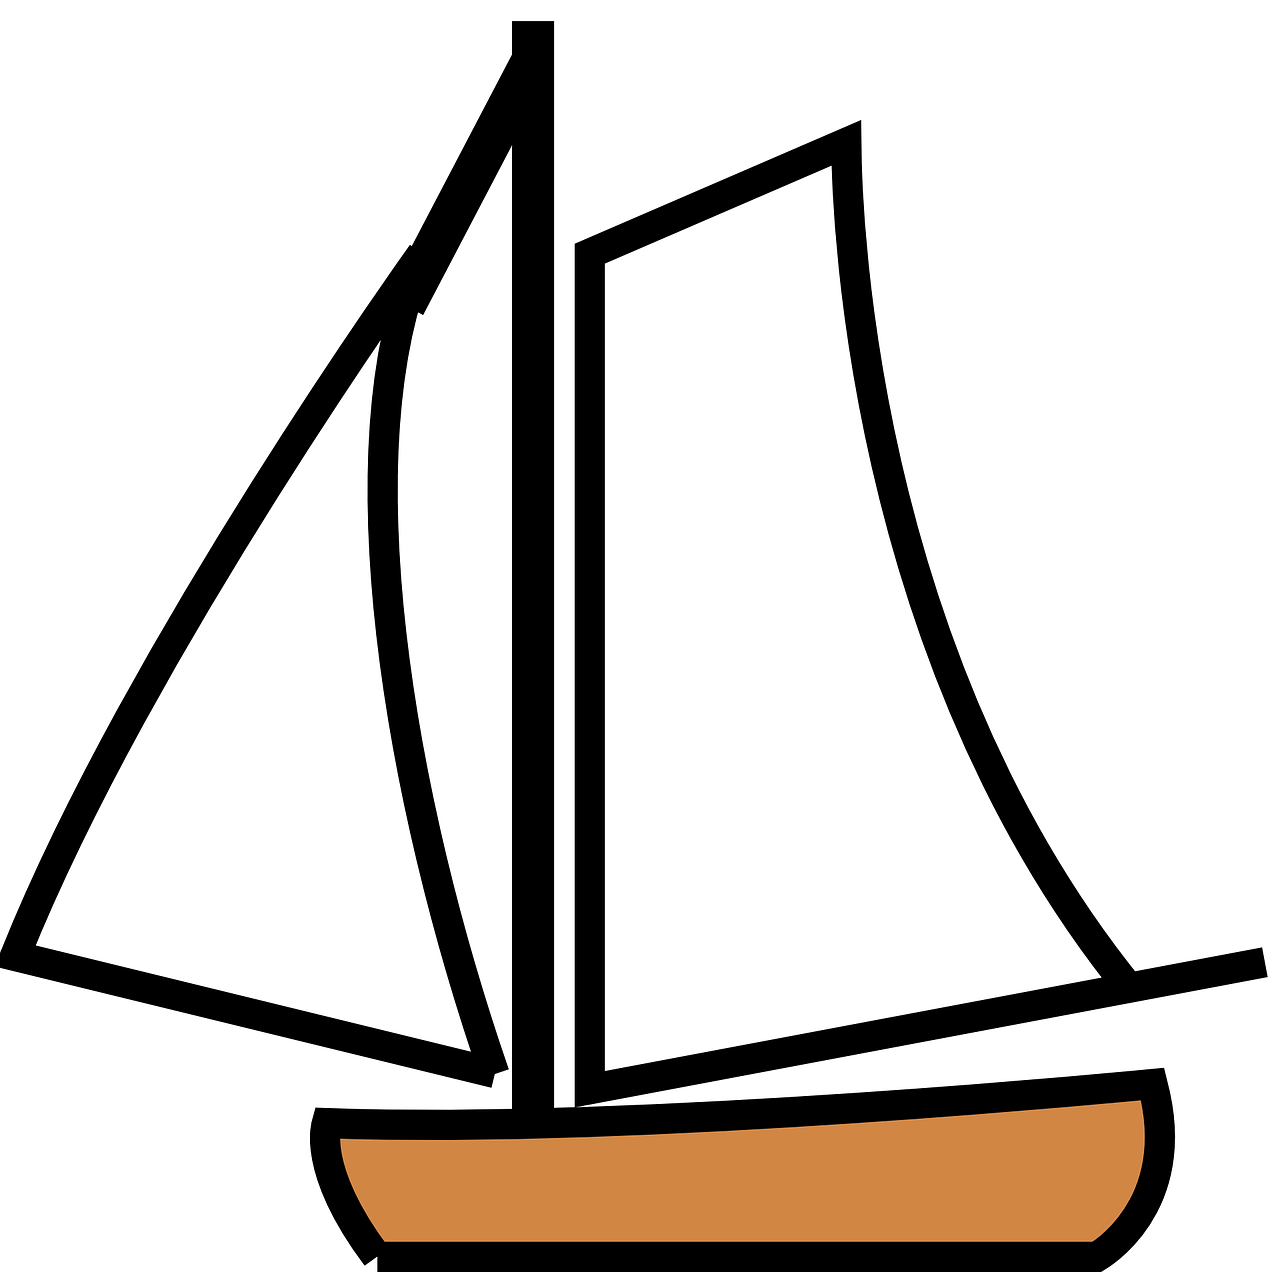 How to draw a boat. stencils 15